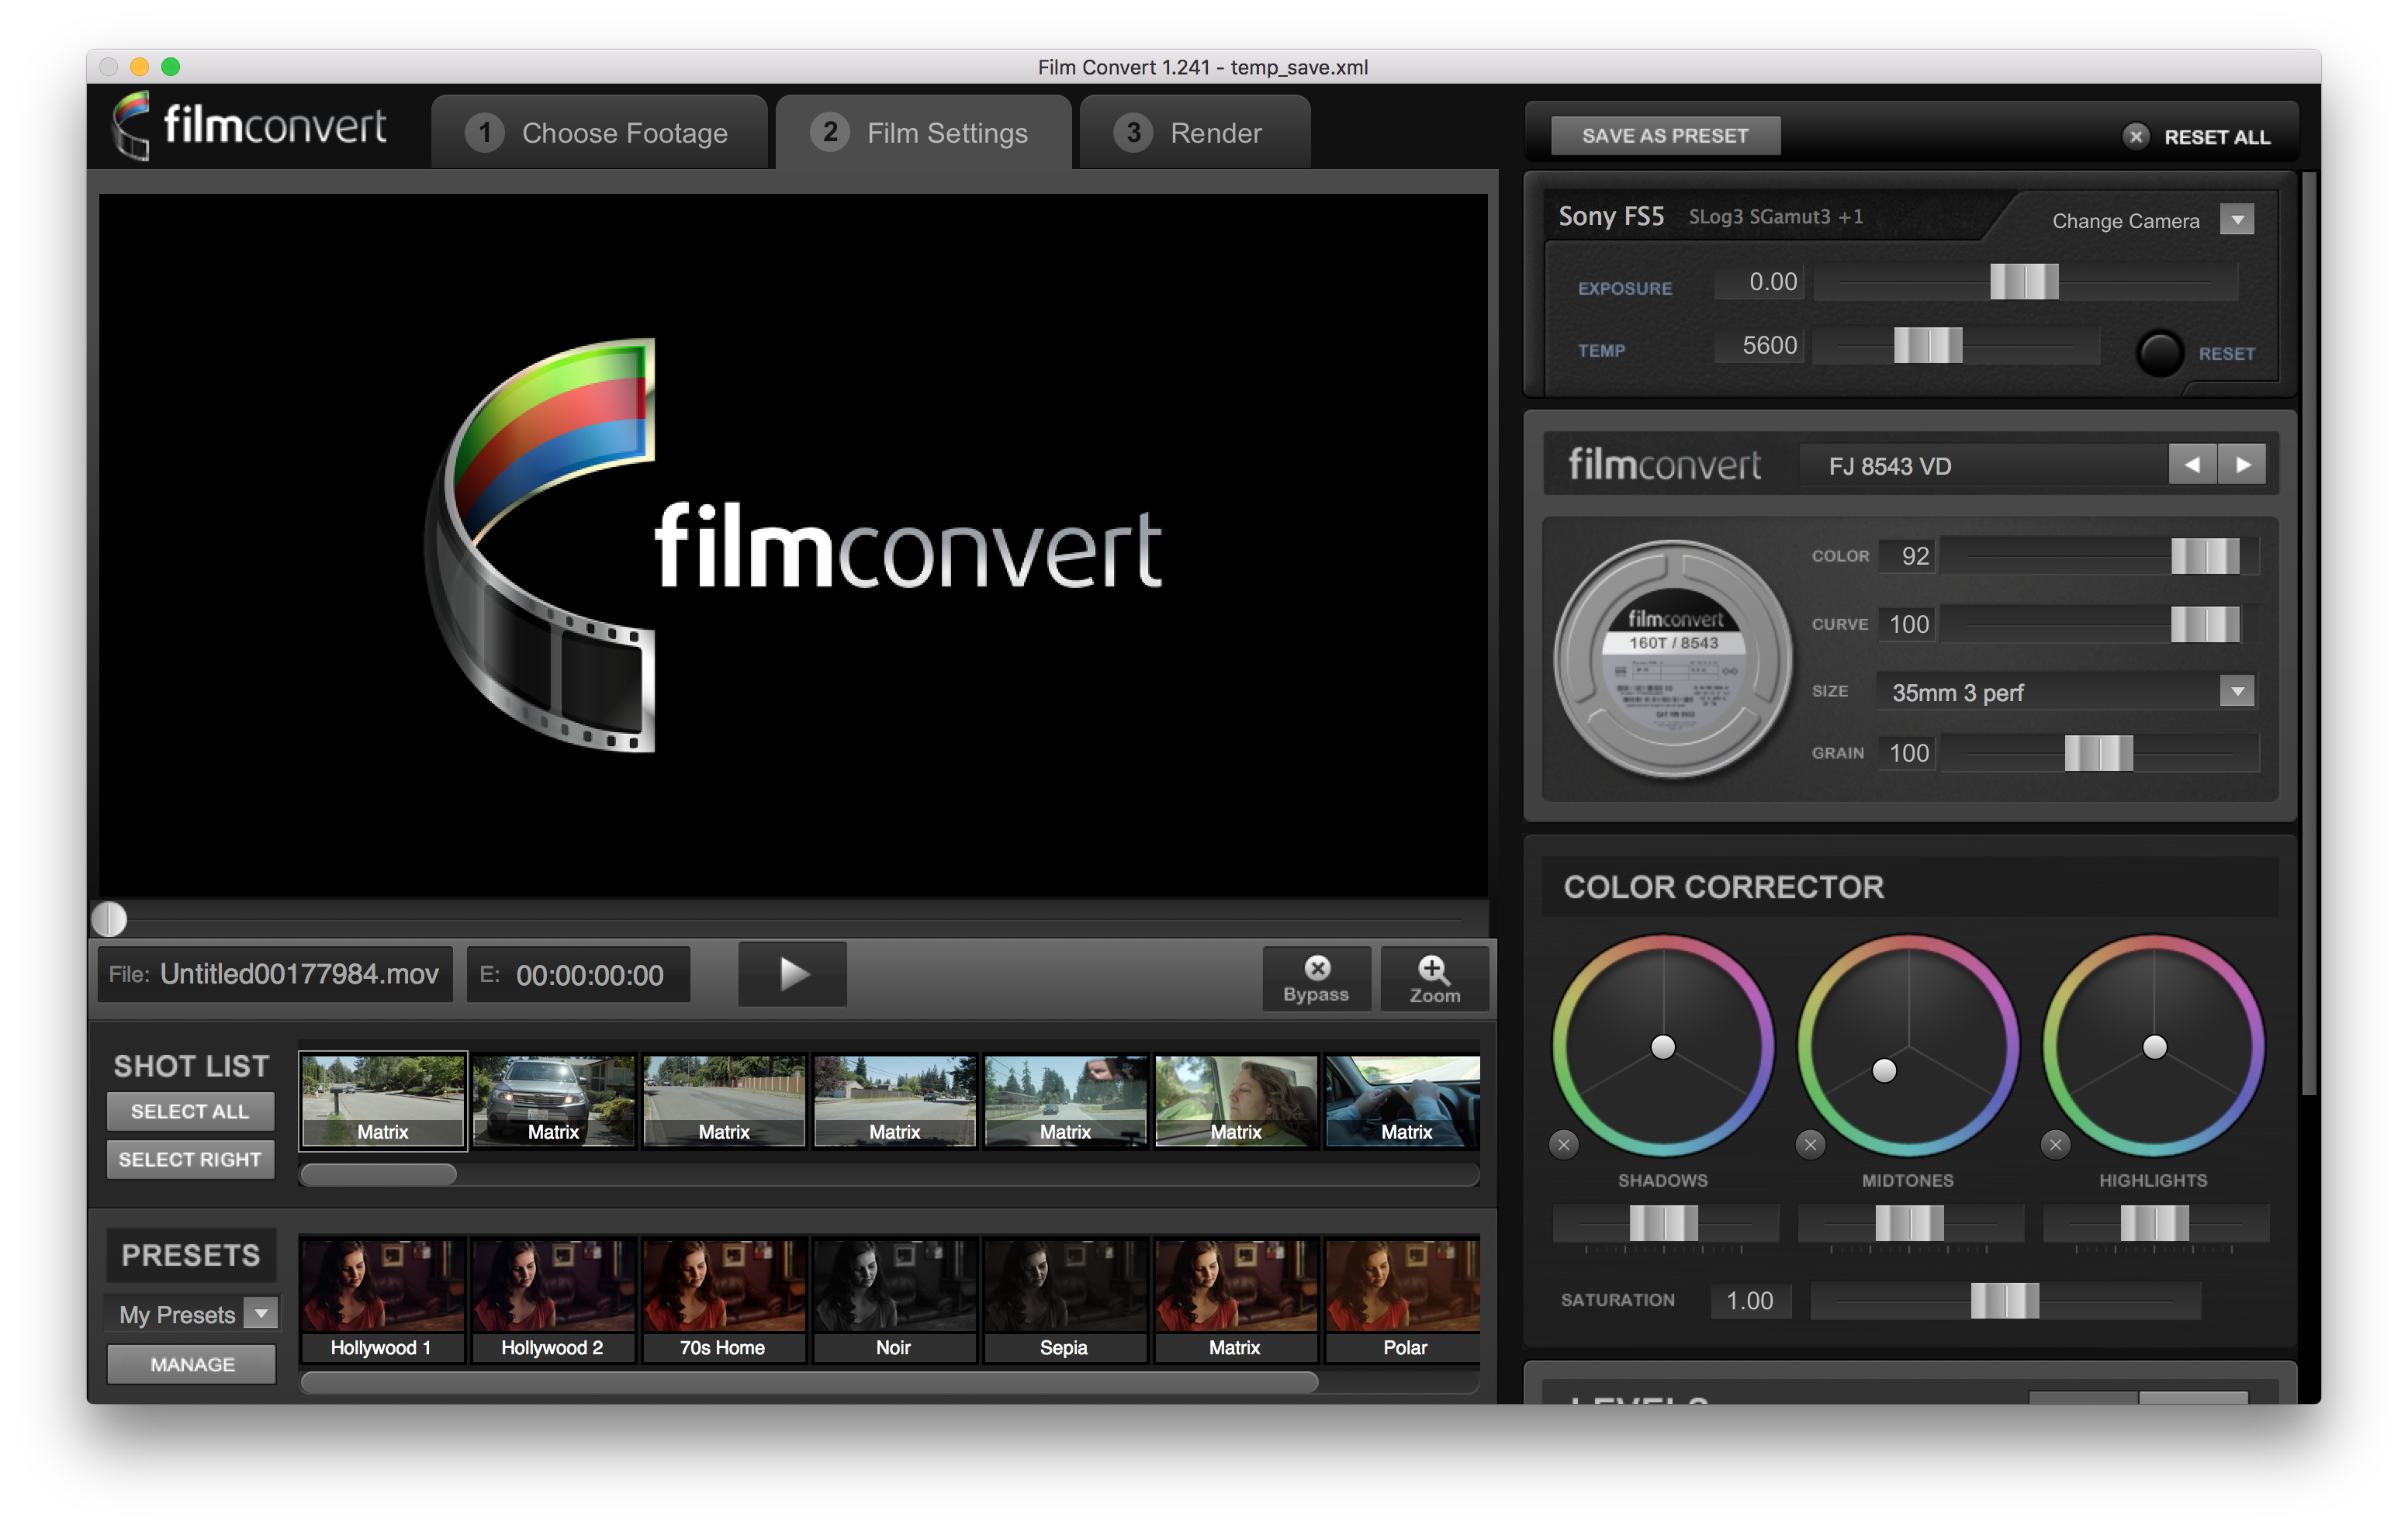 FilmConvert Pro - Script, Plugin For After Effect